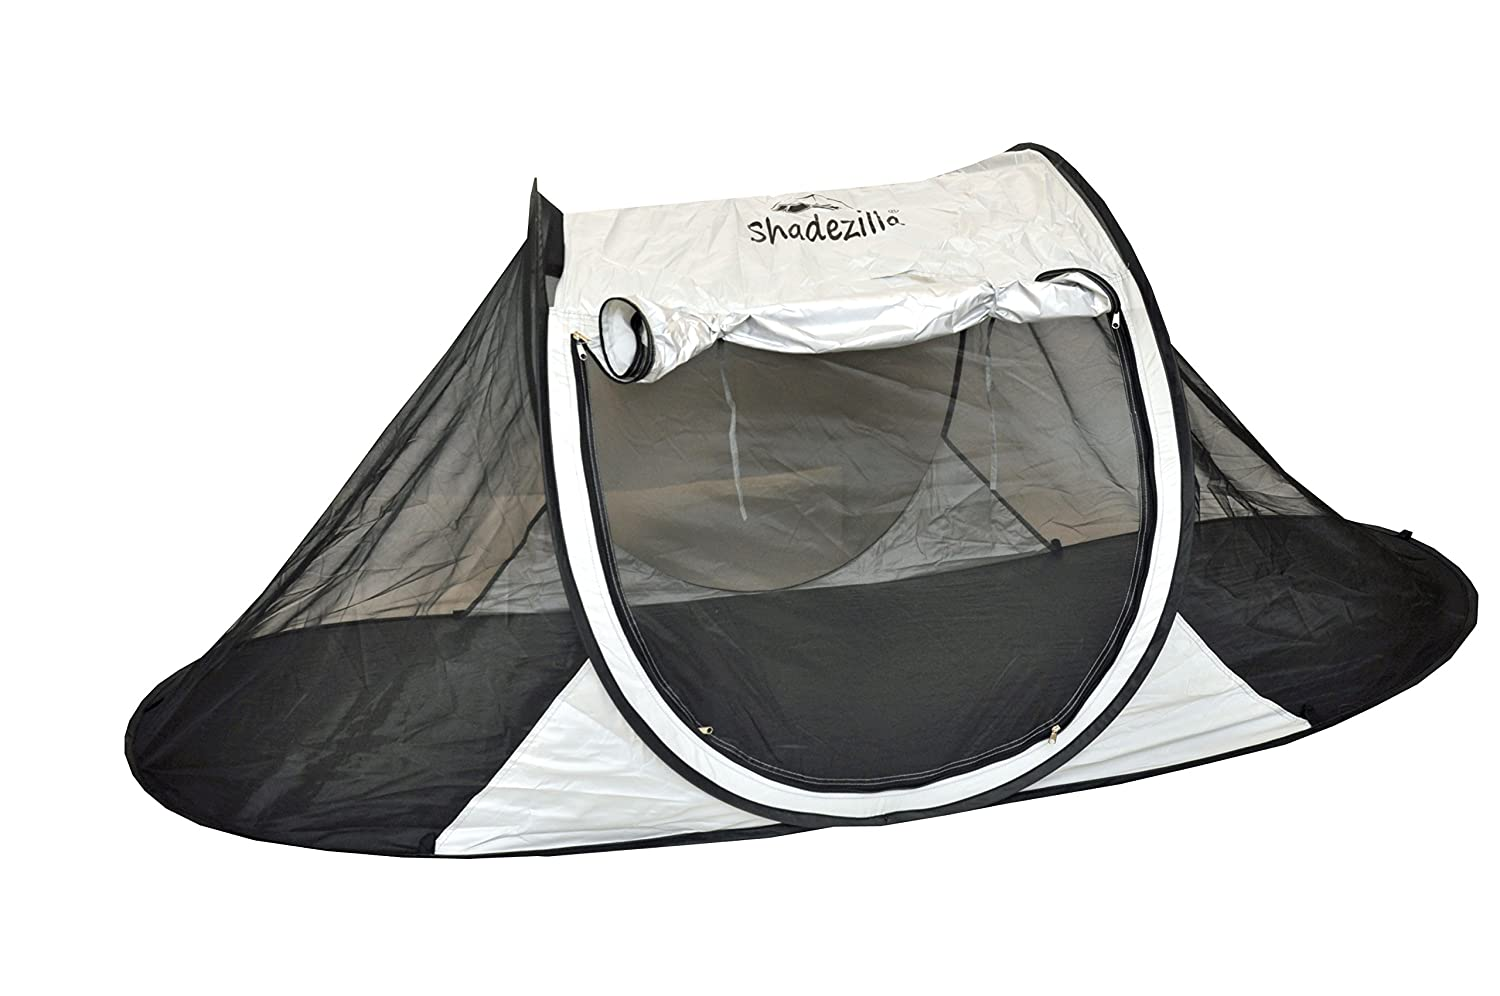 Shadezilla Free-Standing Instant Pop-Up Mosquito Bug Tent with UPF 100 Removable Ceiling for 1 to 2 Person